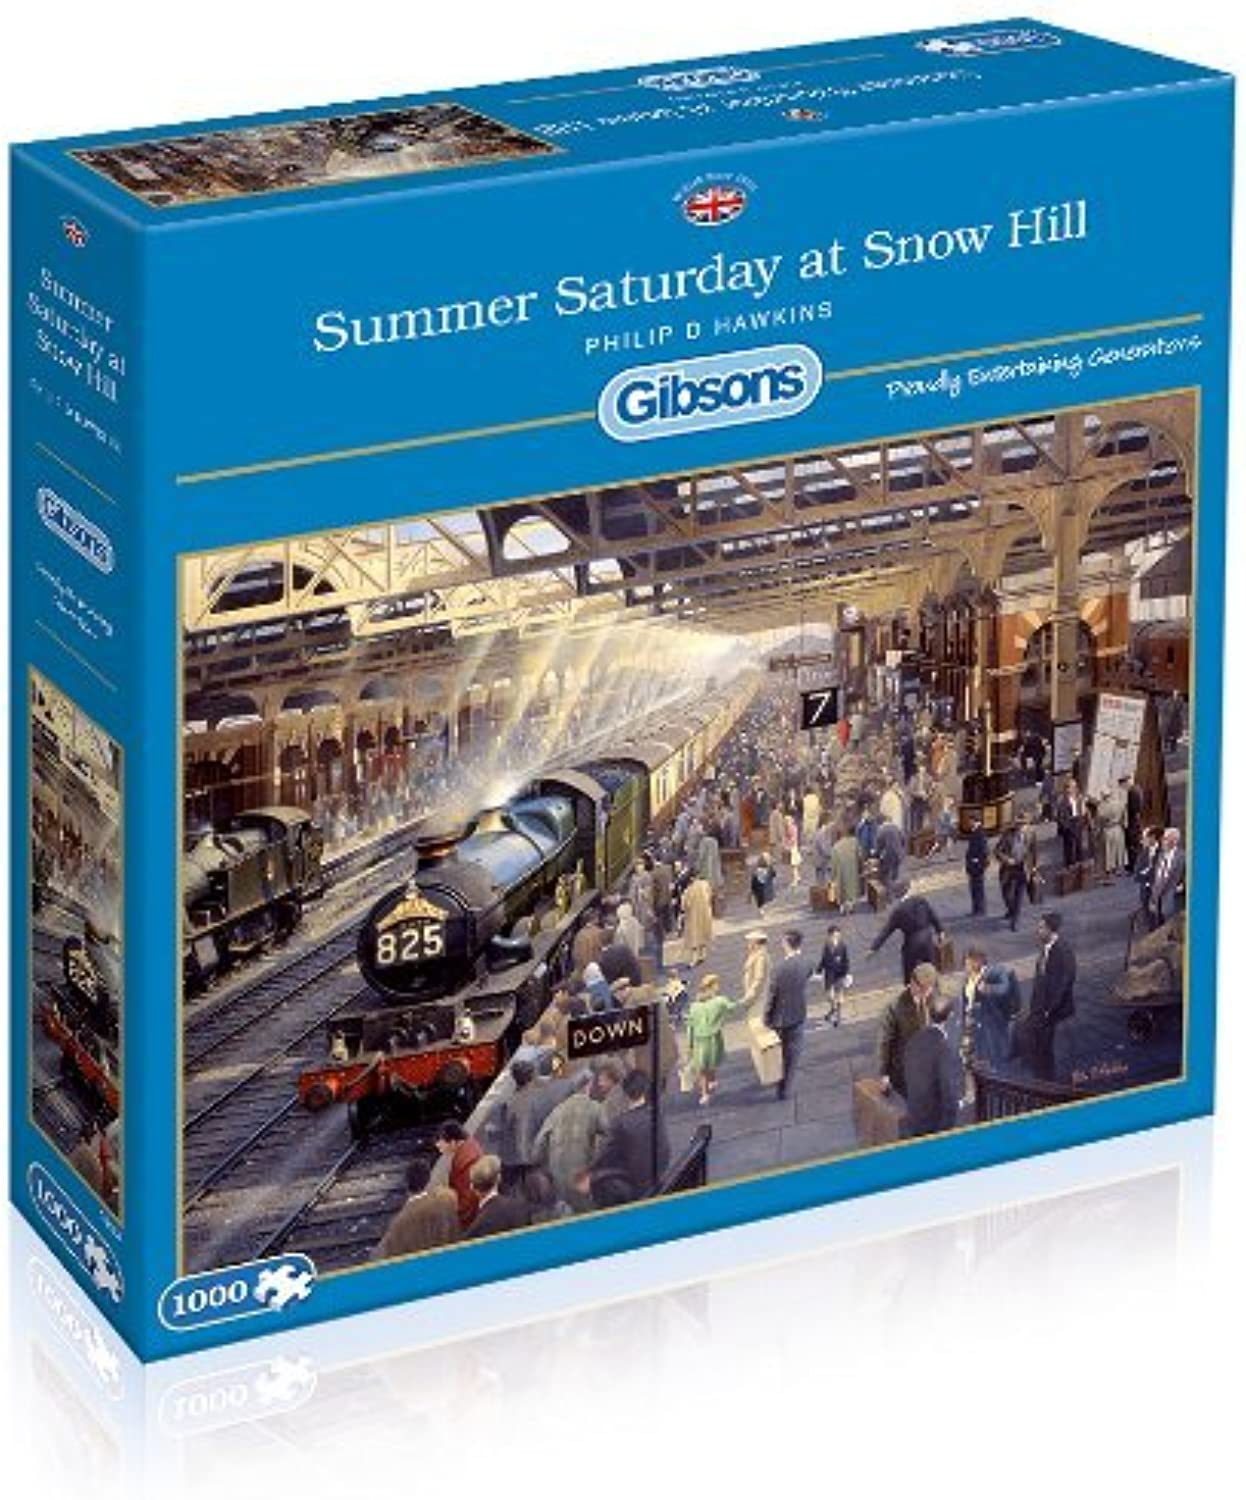 Gibsons Summer Saturday at Snow Hill Jigsaw Puzzle (1000-Piece) by Gibsons